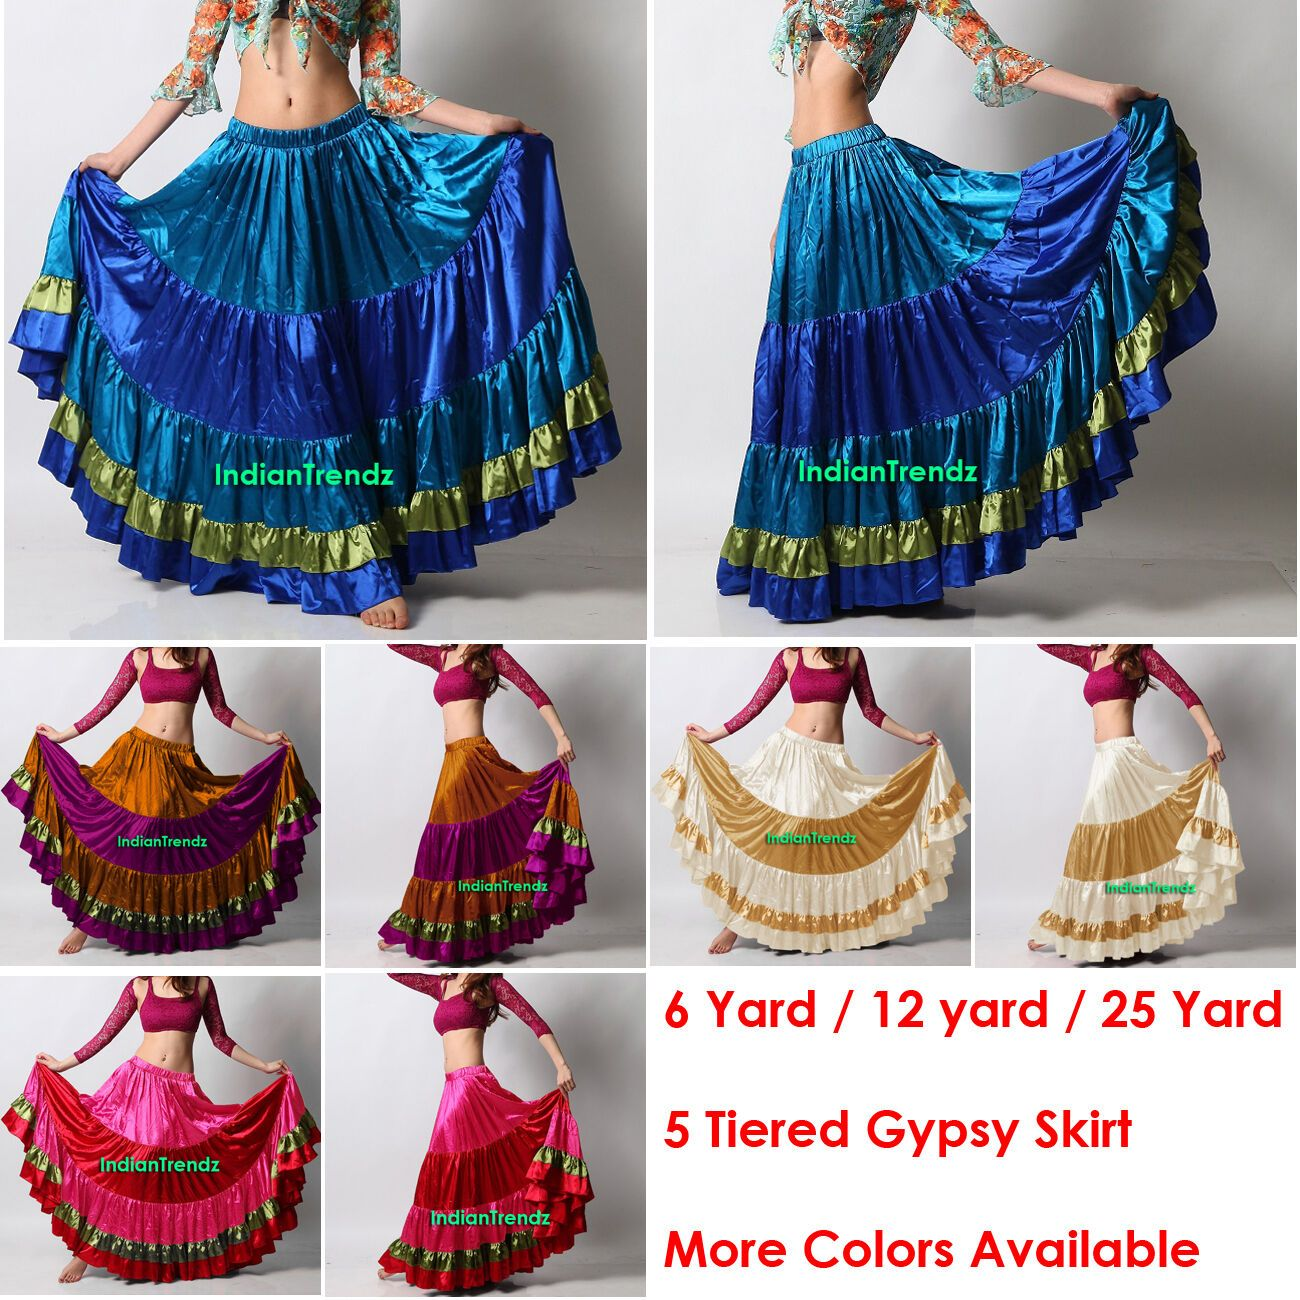 Mix Color Satin 6-12 25 Yard Tiered Gypsy Skirt Belly Dance Flamenco Ruffled